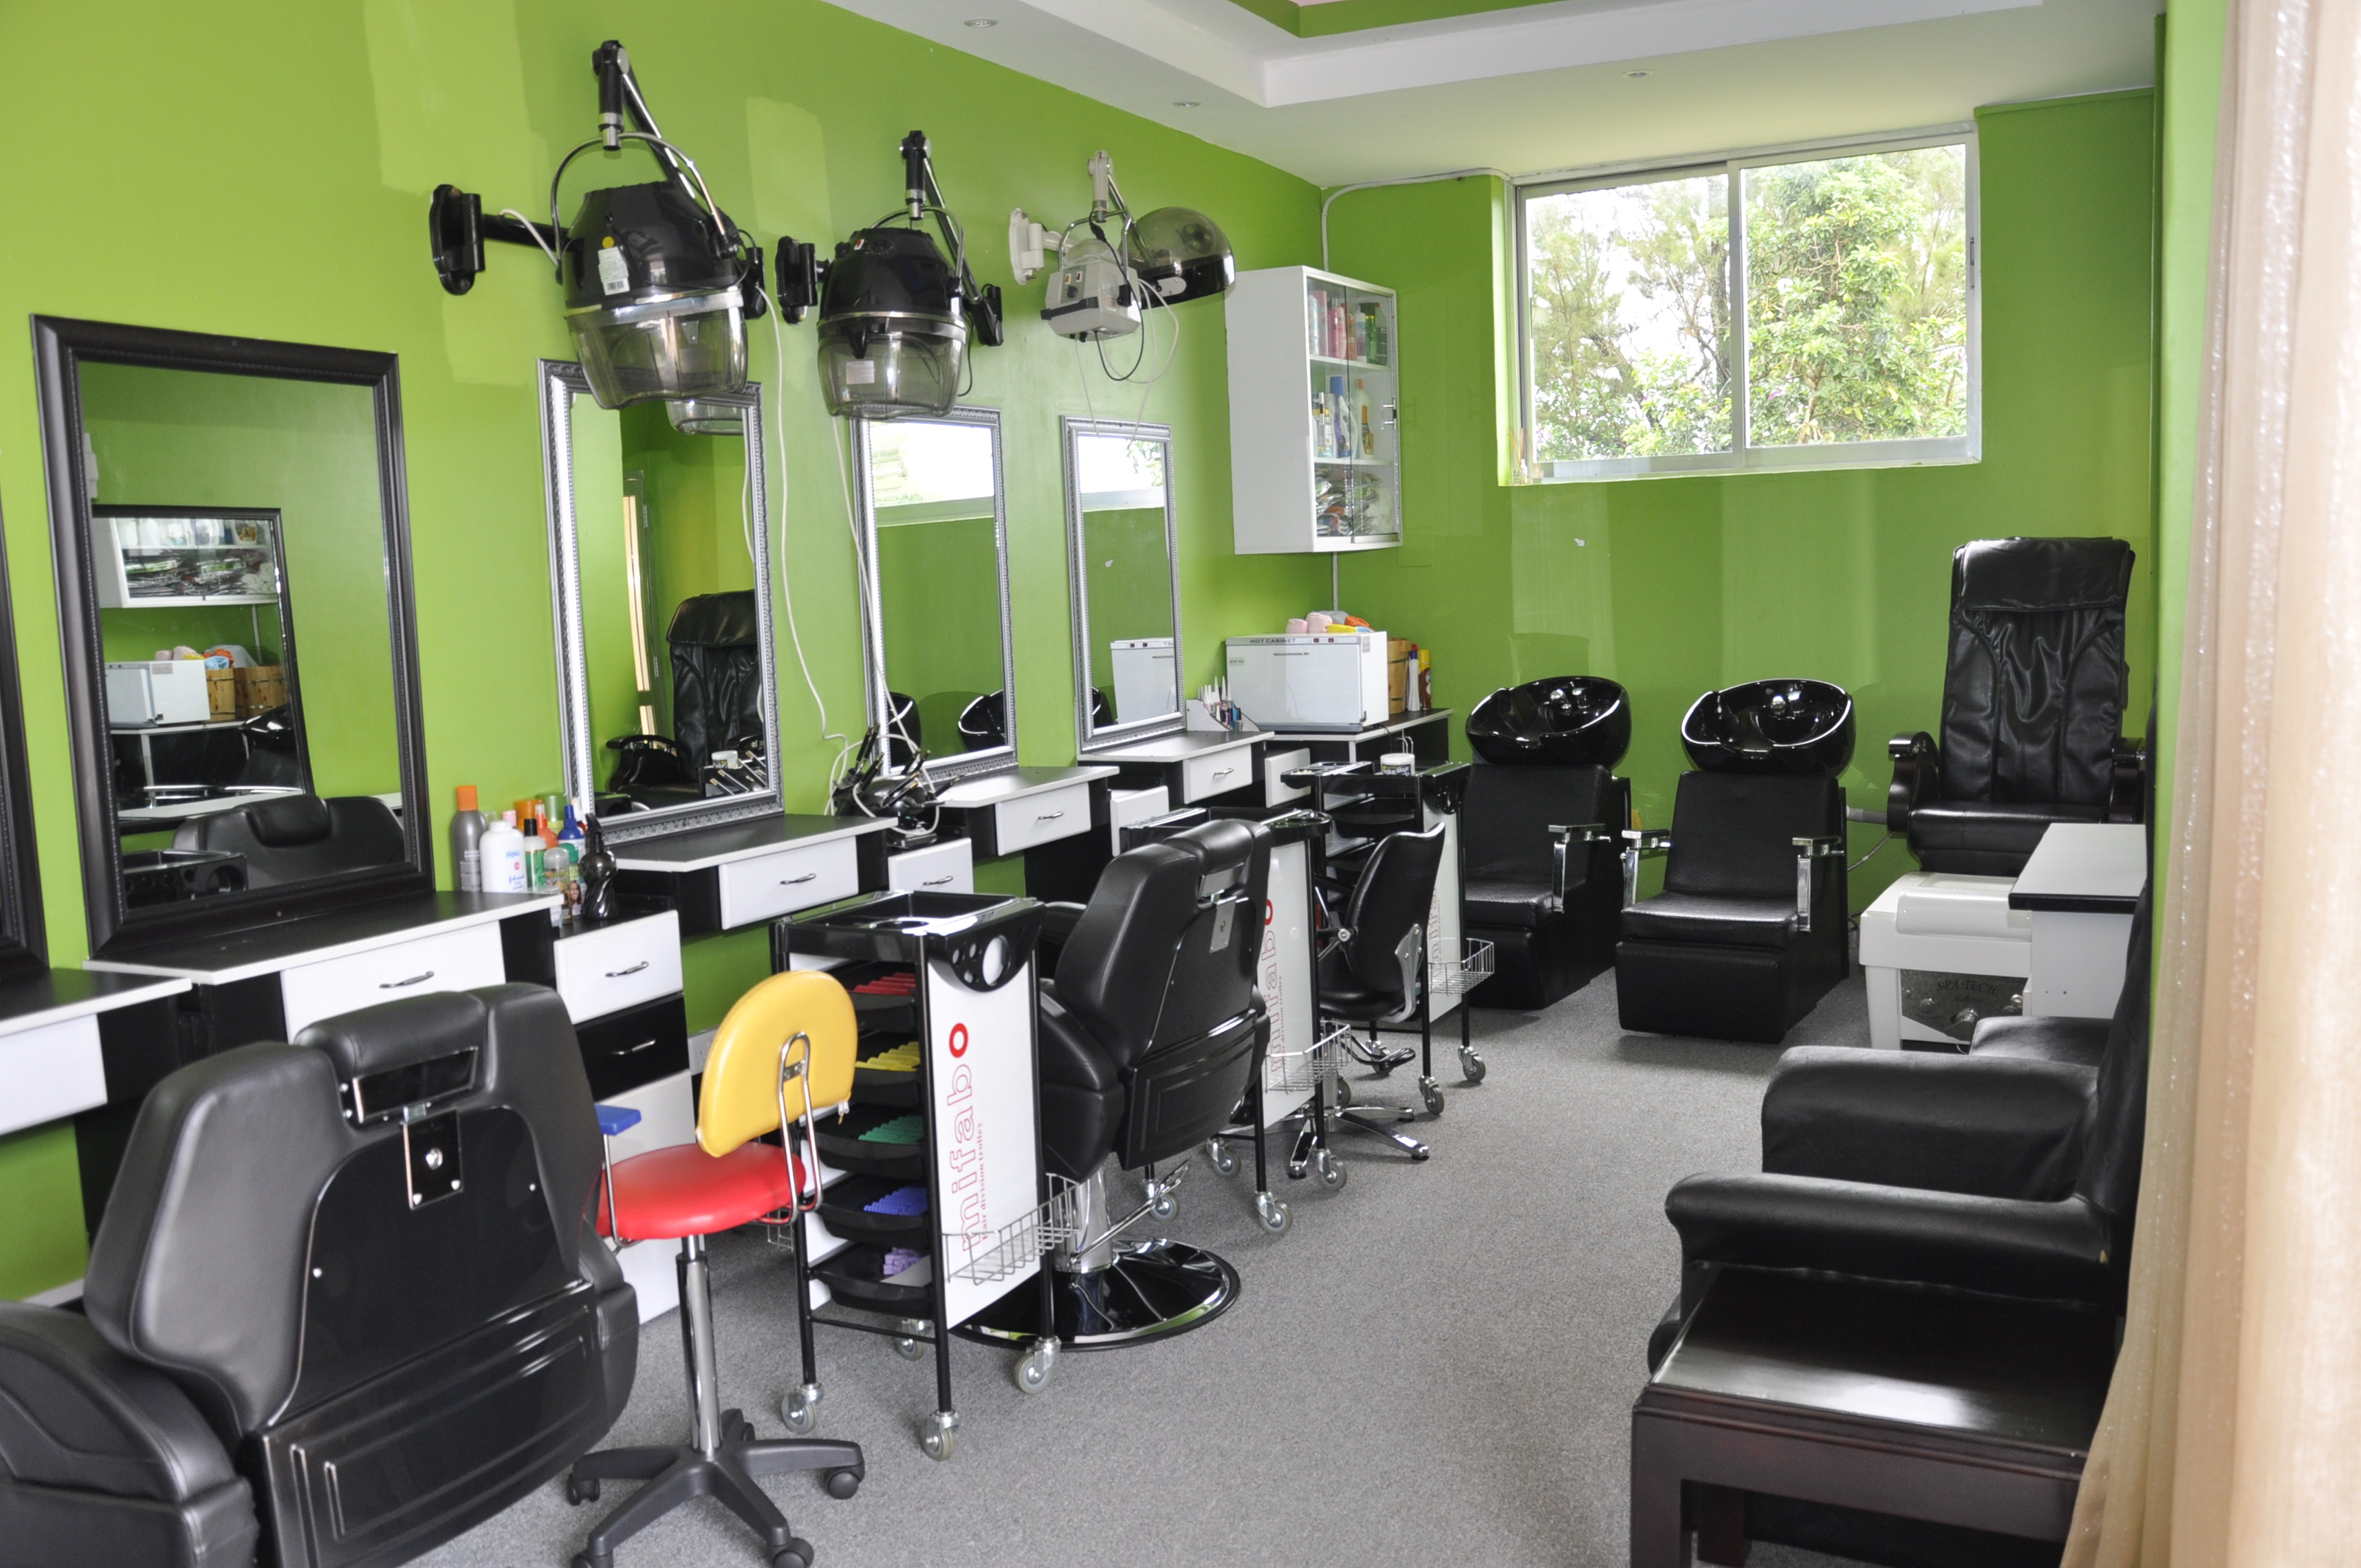 BARBER SEATS, DRYERS AND BATH CHAIRS